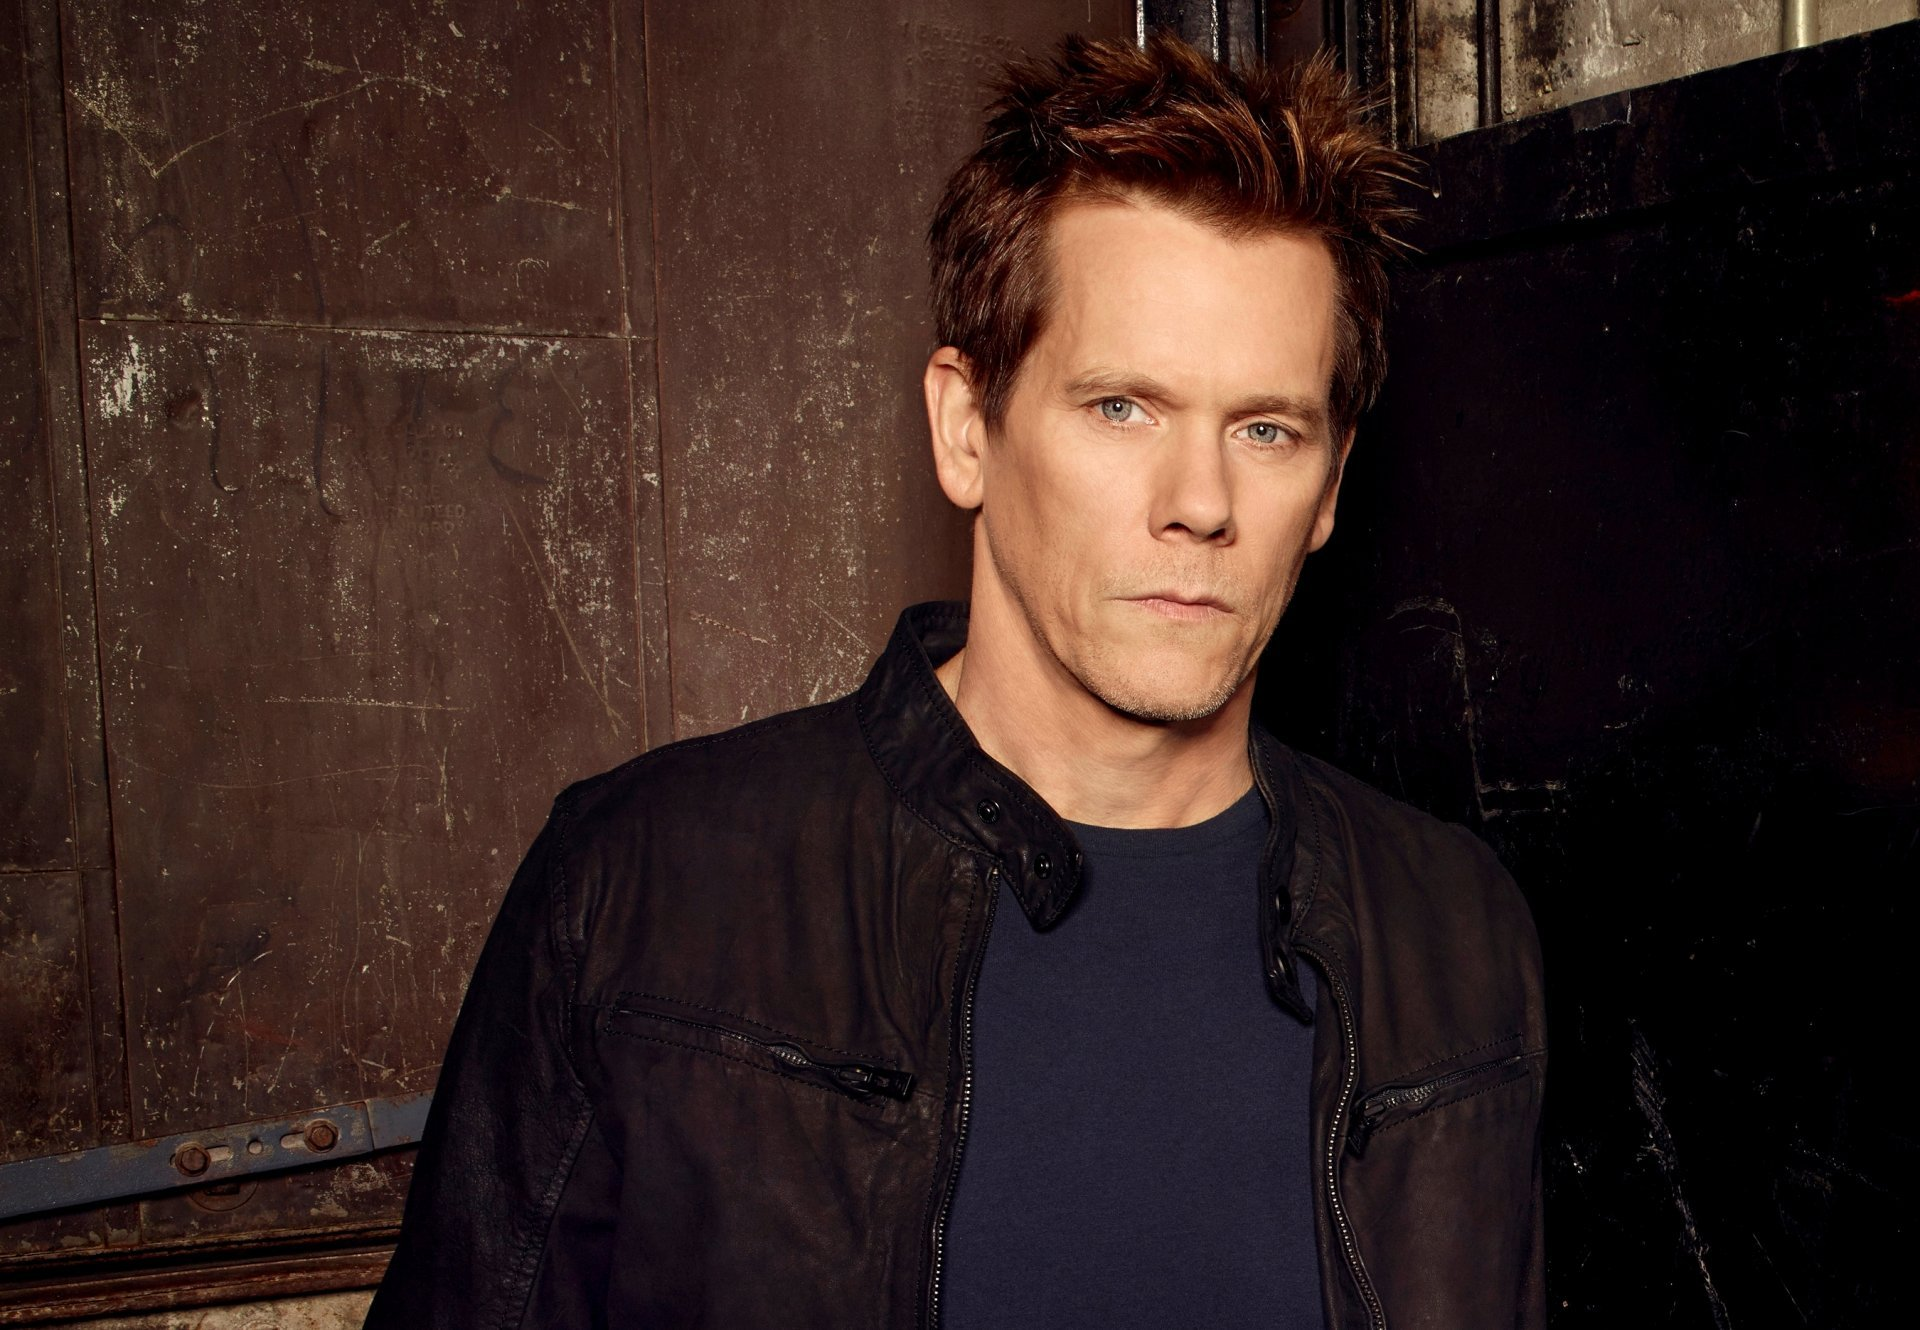 kevin bacon kevin bacon men face tv series the following 1920x1330